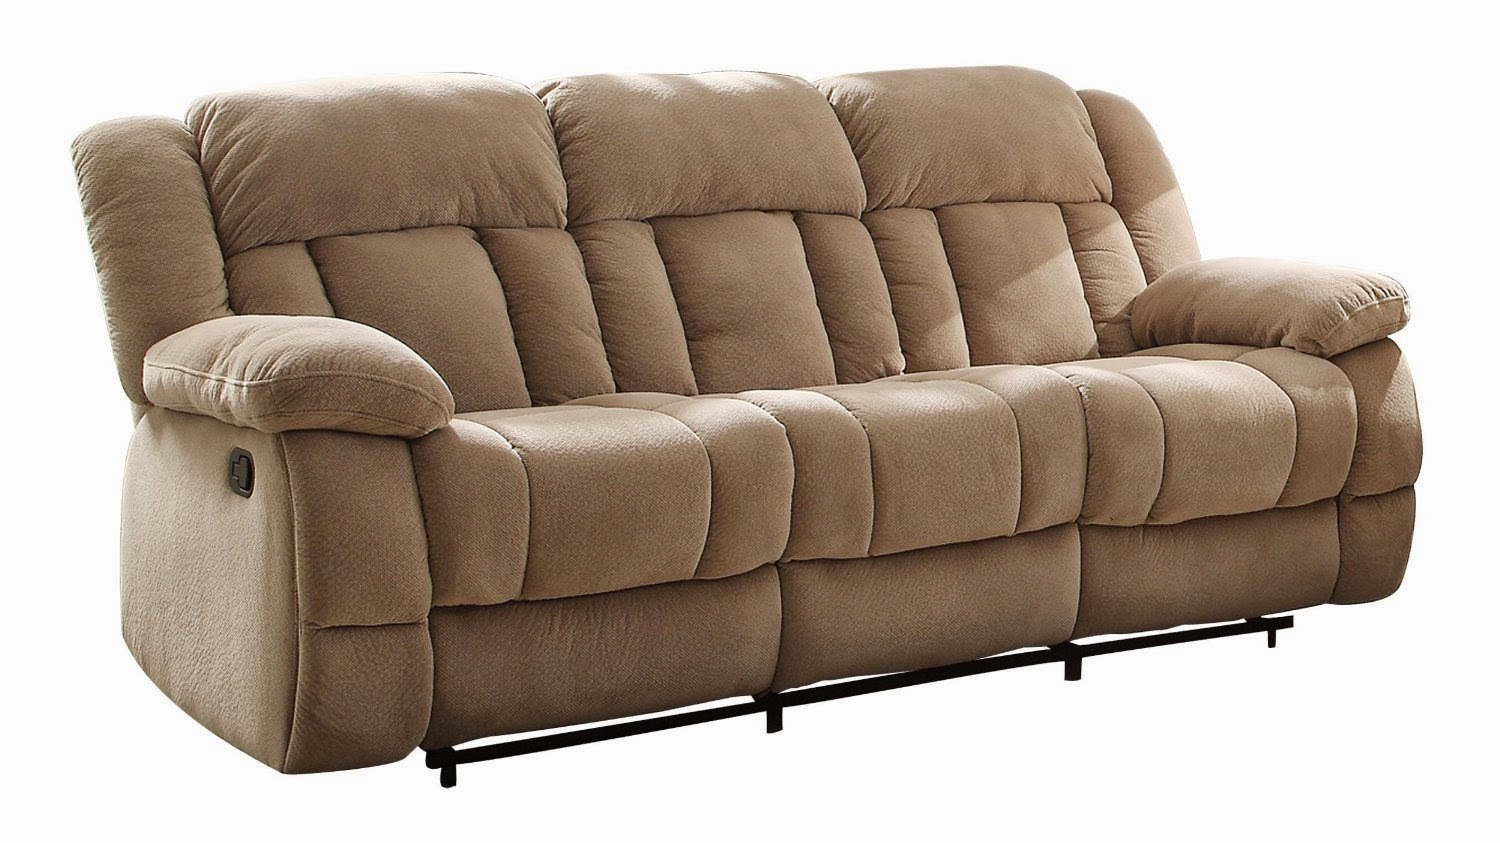 Best Sofa Recliner Sofas Online Bangalore The Reclining Ratings Reviews Eric Double